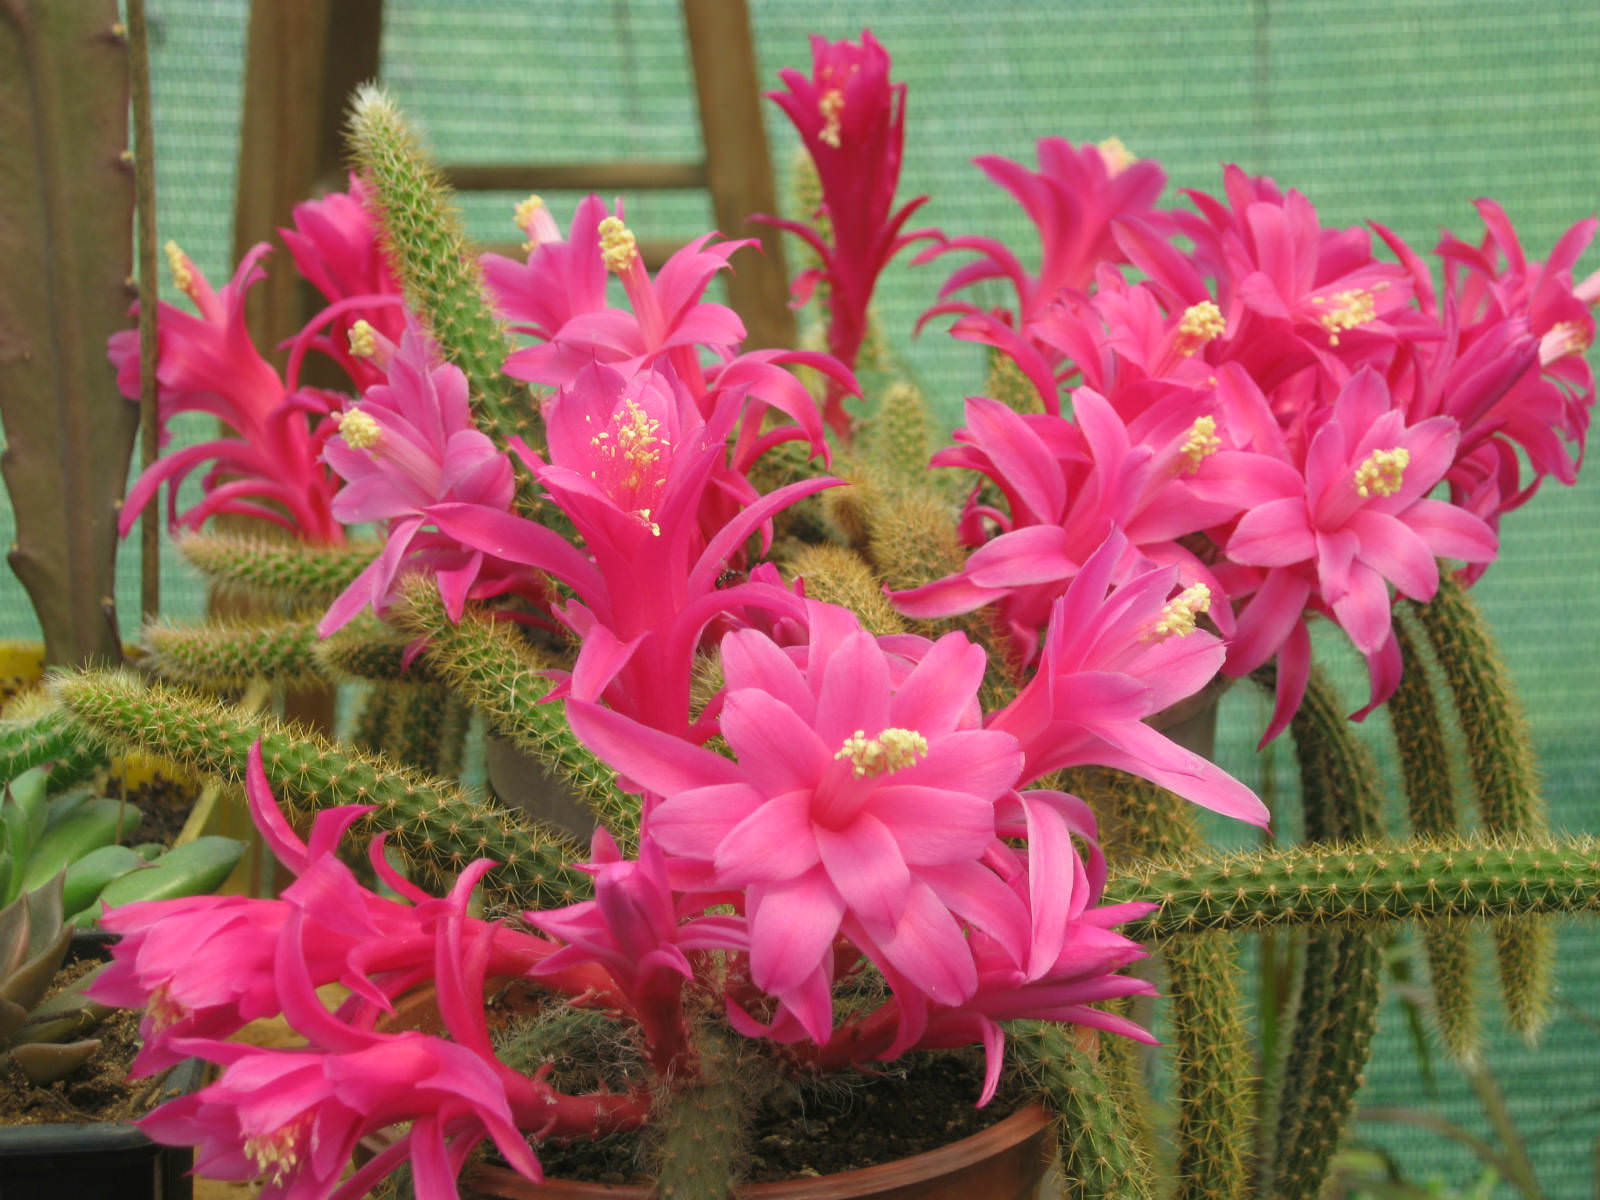 Smothery General Rat Tail Cactus How To Grow Sale Care A Rat Tail Cactus Rat Tail Cactus Plant Rat Tail Cactus houzz 01 Rat Tail Cactus